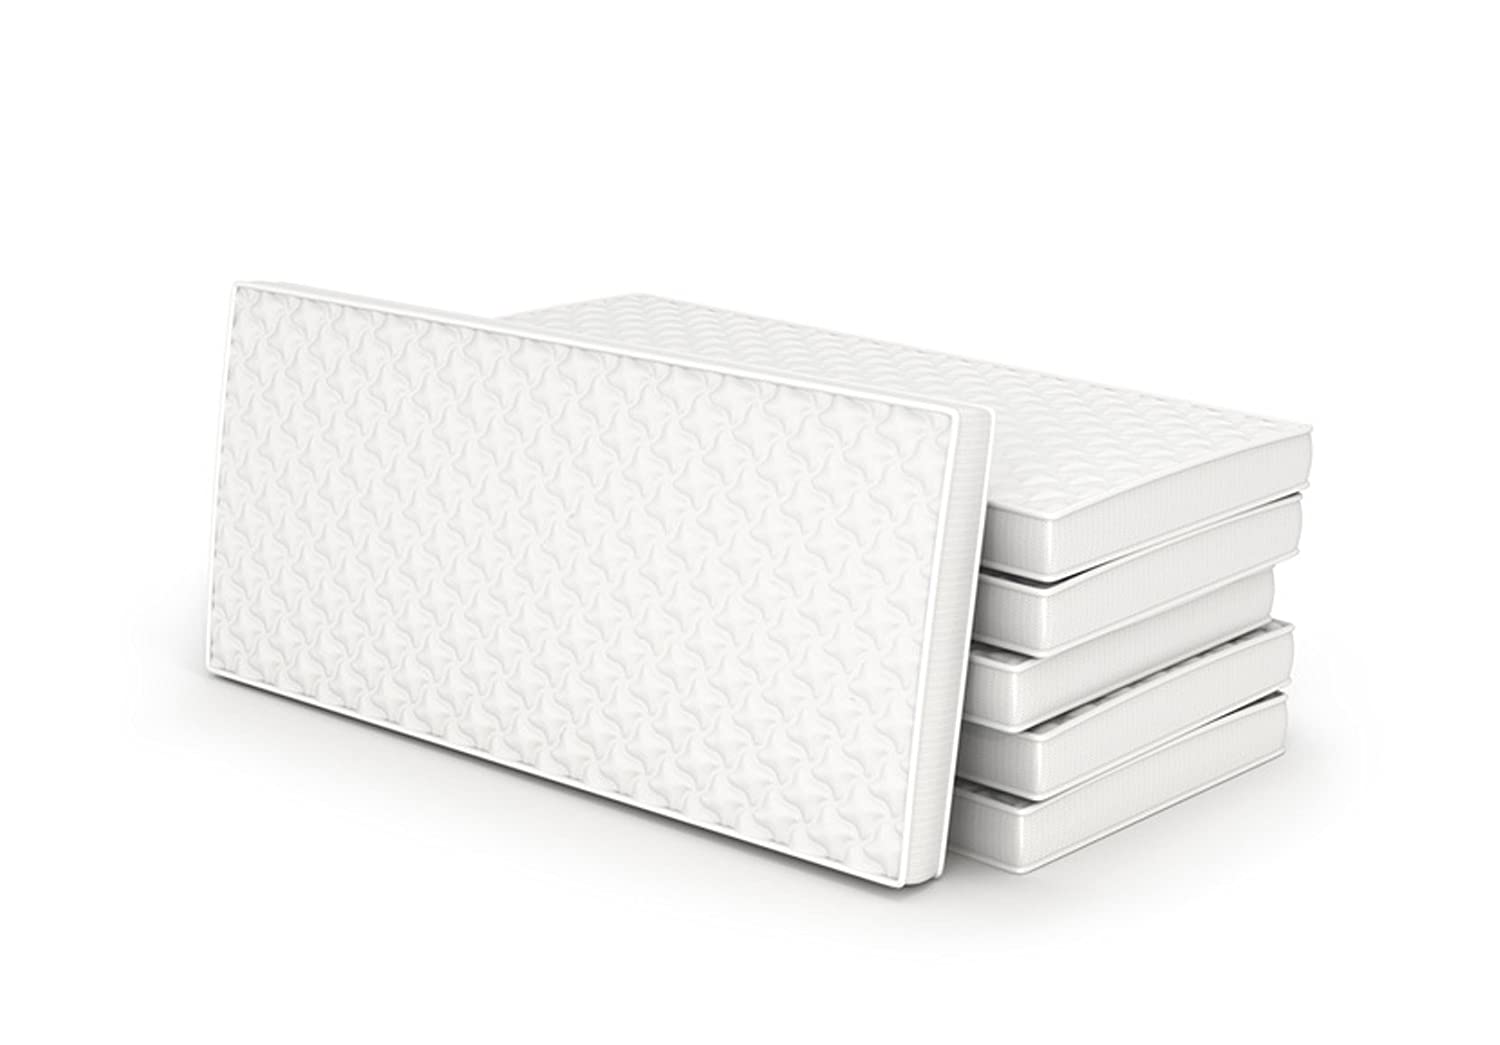 Superior Quilted Cot Mattress 140 x 70 - 10cm - UK Made with High Grade Density Foam | by WKDS C2S